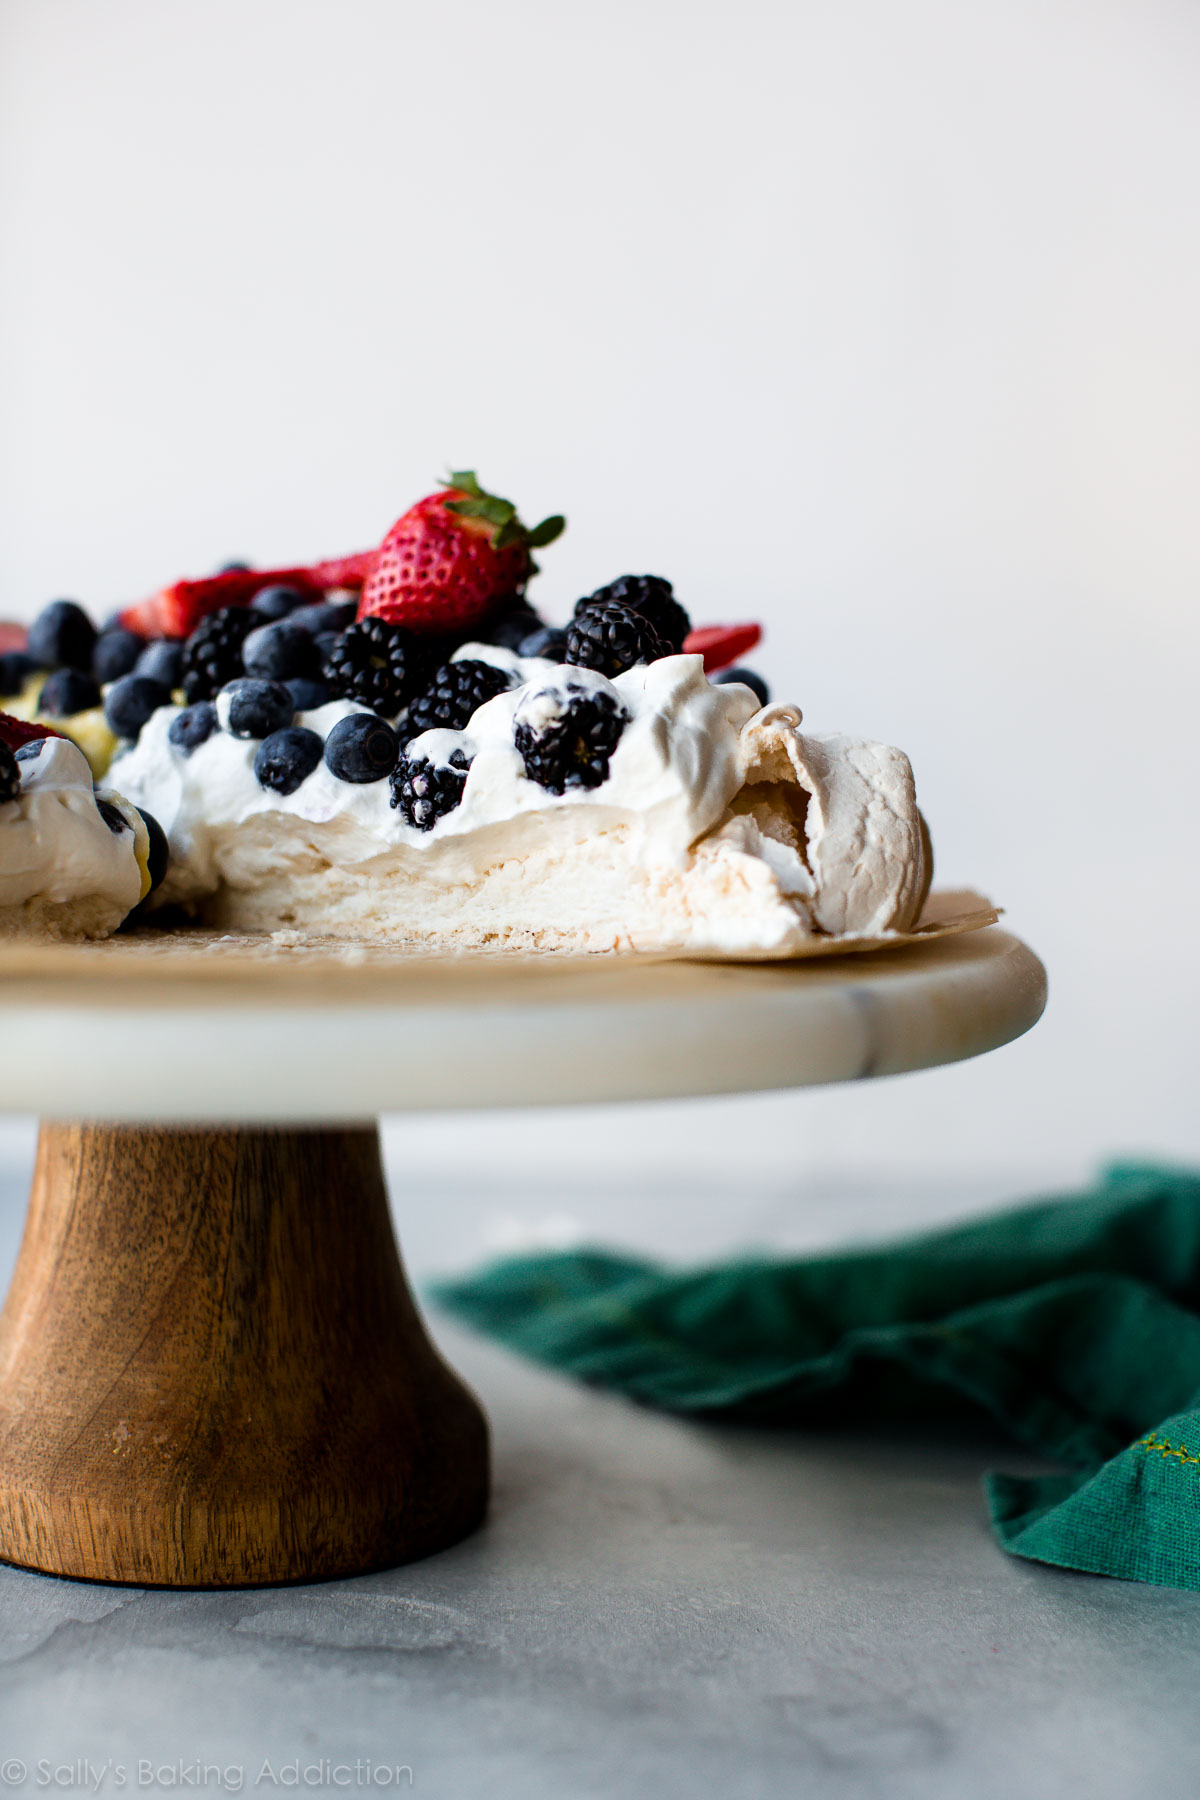 Pavlova is crisp on the edges, chewy on top, and marshmallow soft and creamy in the centers. Pile high with lemon curd, whipped cream, and fresh fruit to make a naturally delicious gluten free dessert! Recipe on sallysbakingaddiction.com